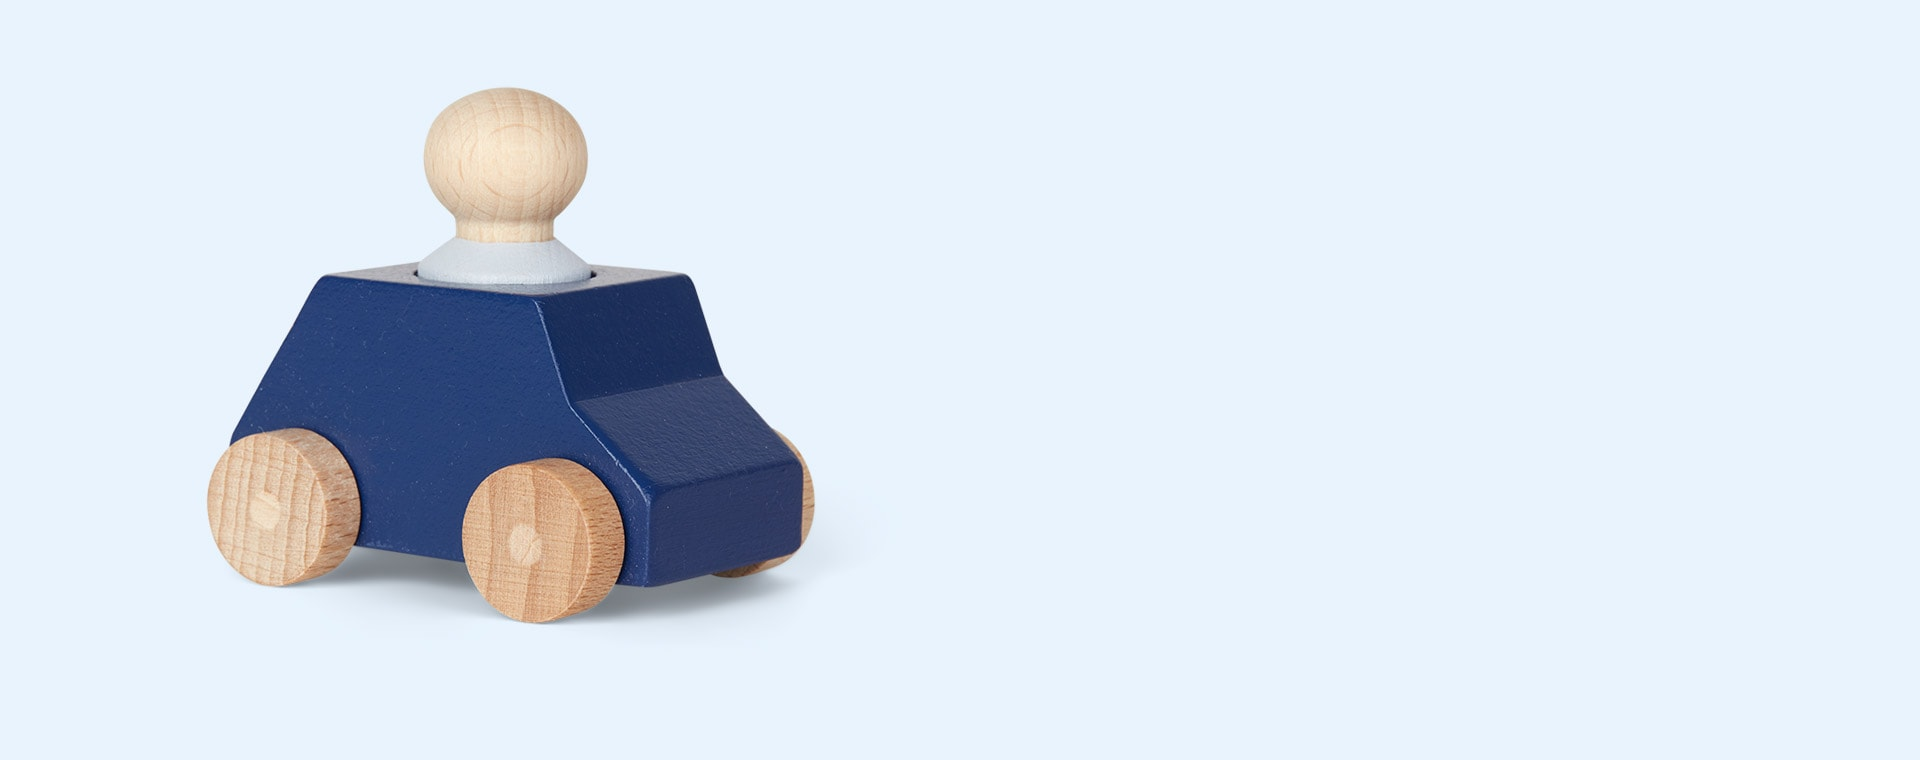 Blue Lubulona Wooden Toy Car